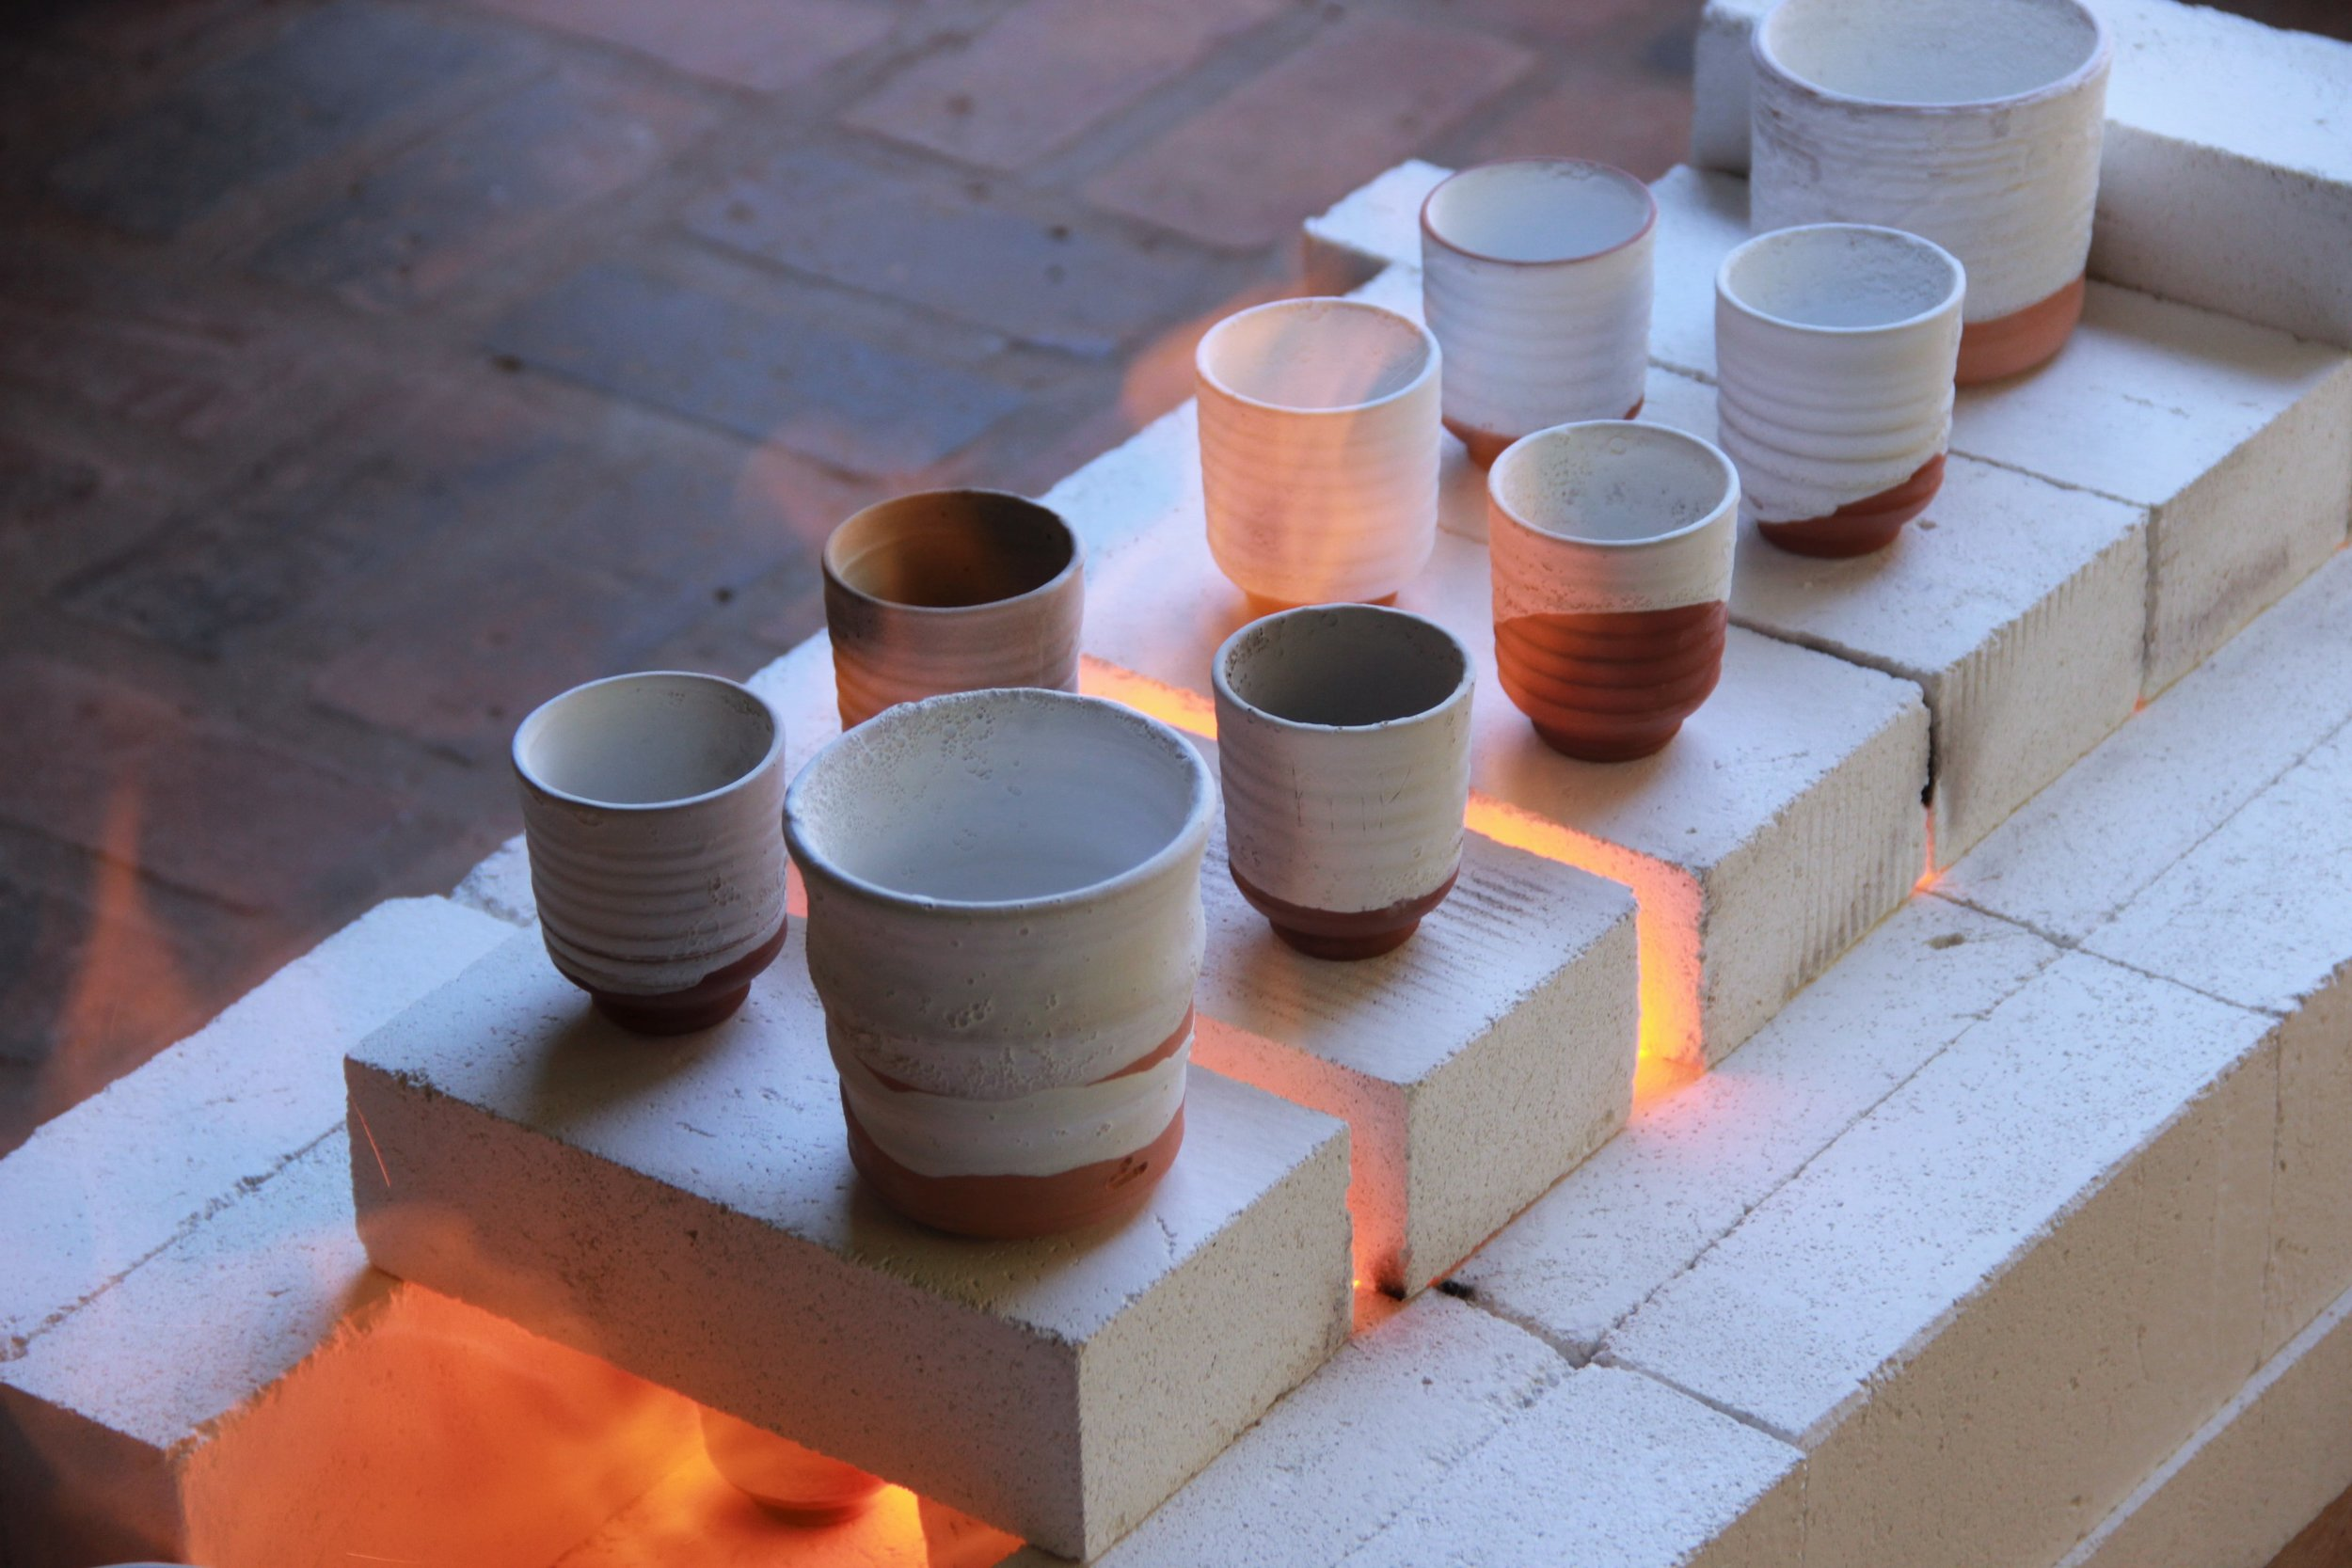 ceramics - With the popularity of ceramics on the rise once again, this course offers the perfect opportunity for beginners and more advanced potters alike to practice and develop their ceramics skills.